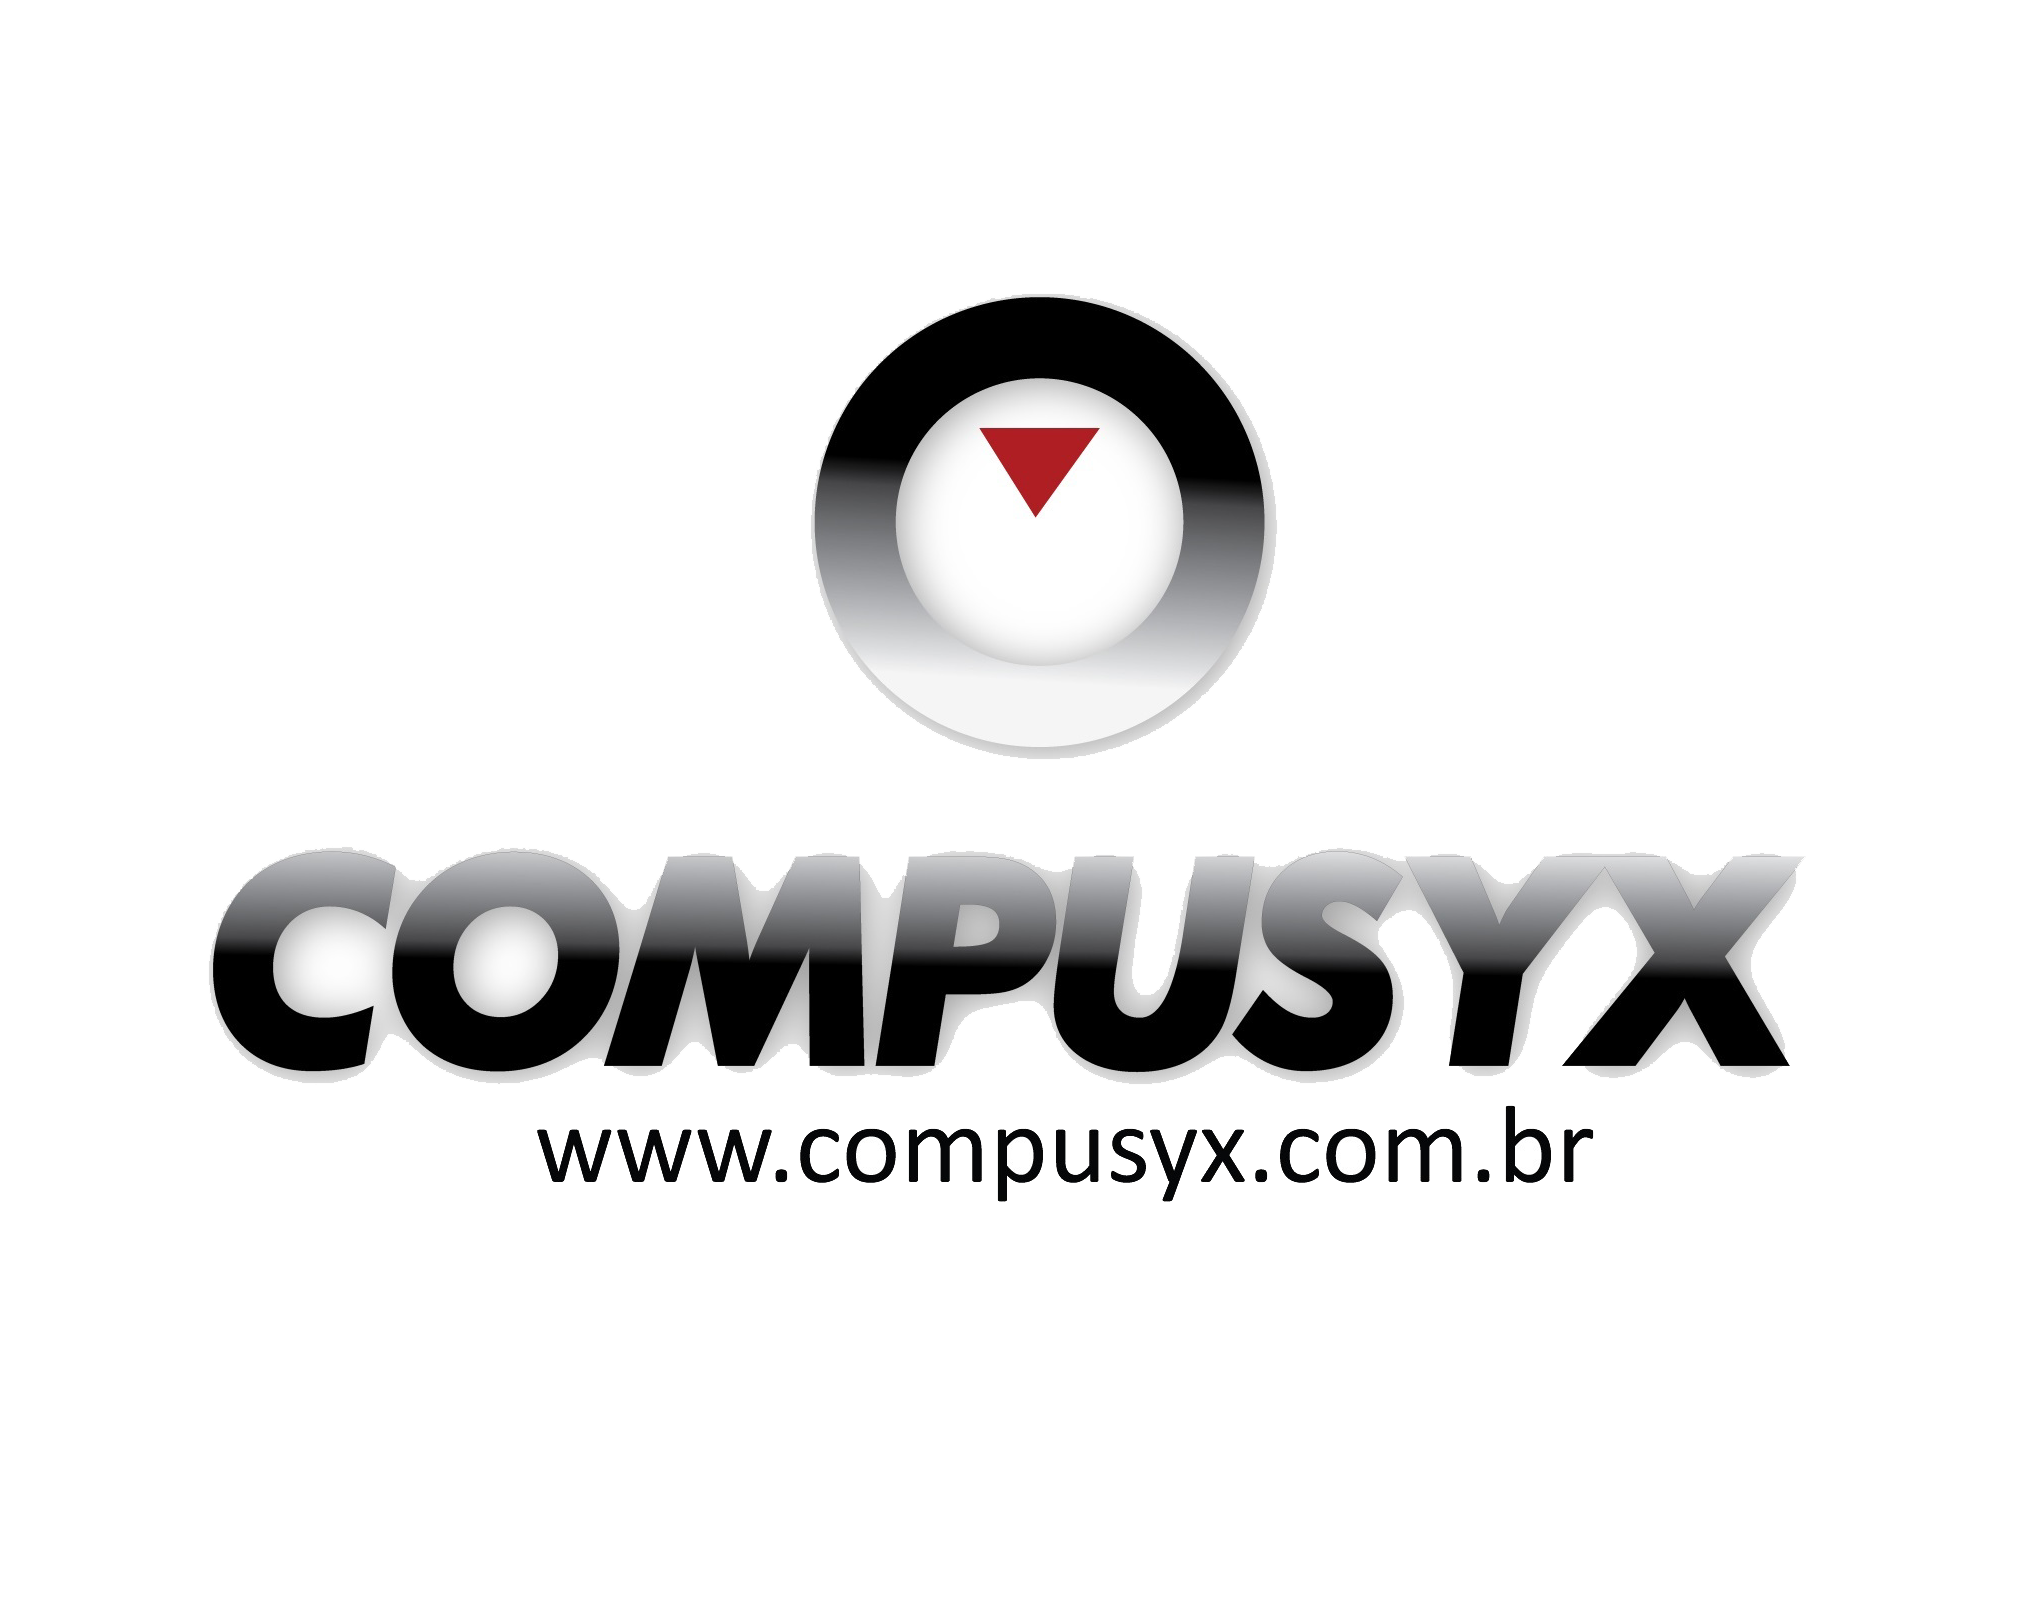 Compusyx